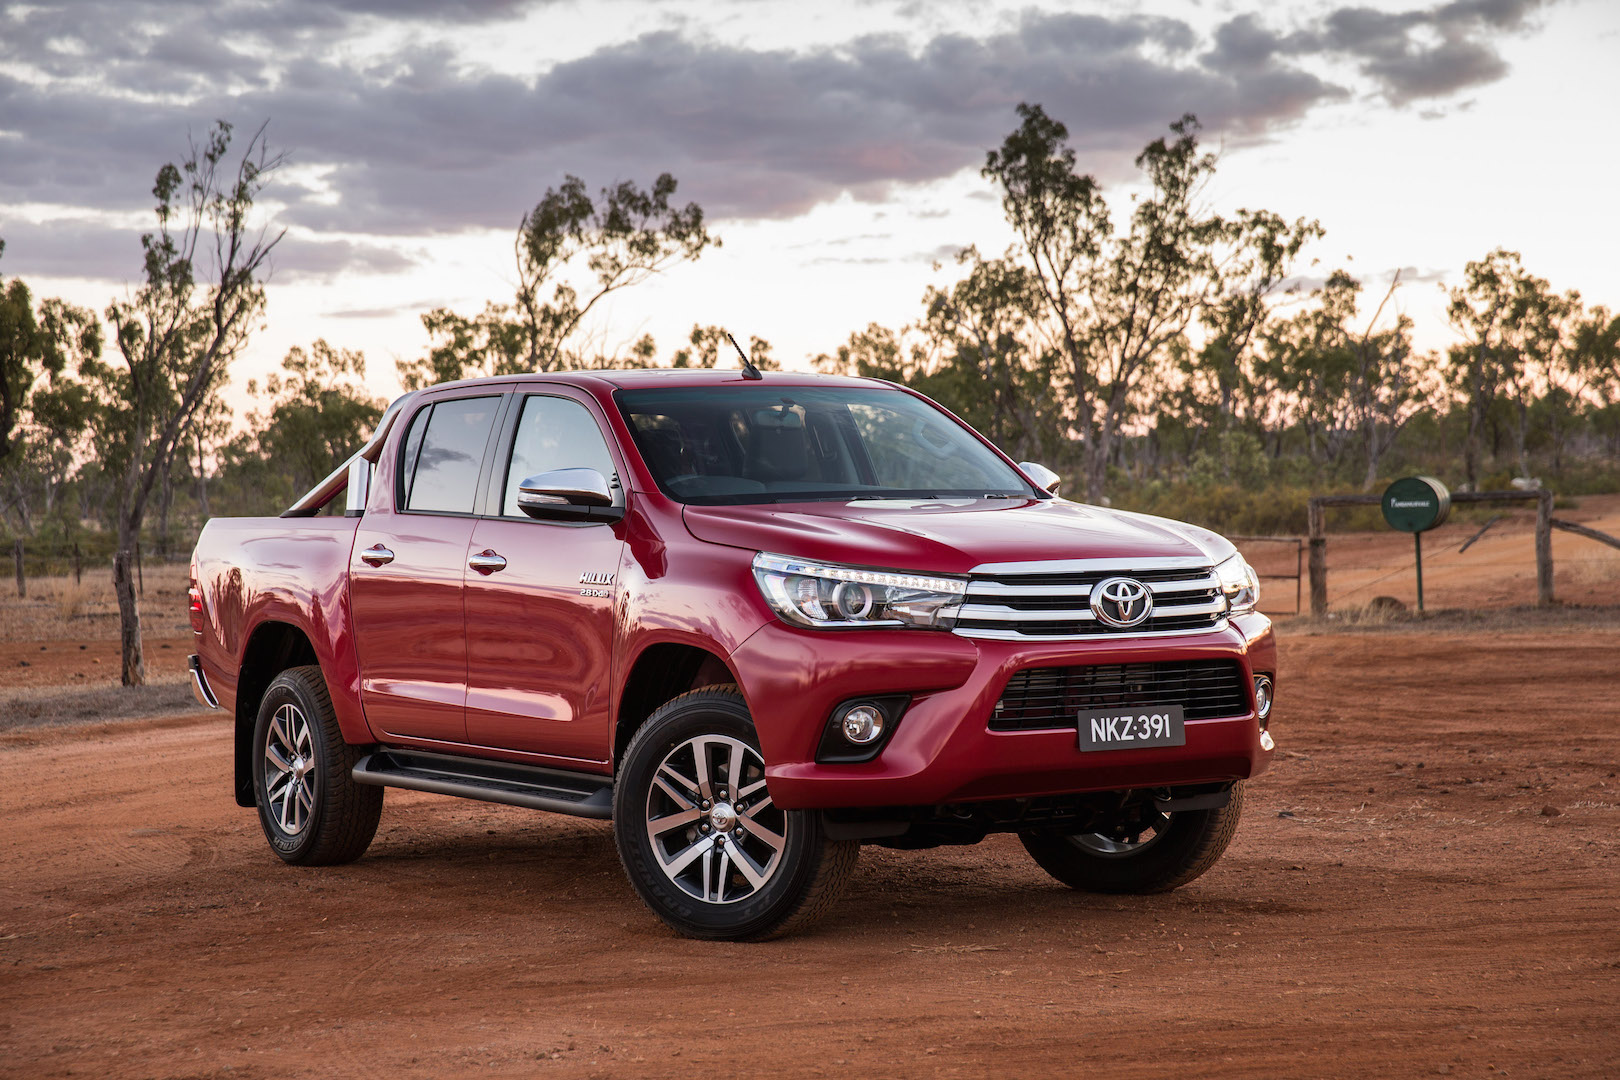 2016 toyota hilux sr 4x4 cab chassis review caradvice - 2016 Toyota Hilux Car Review